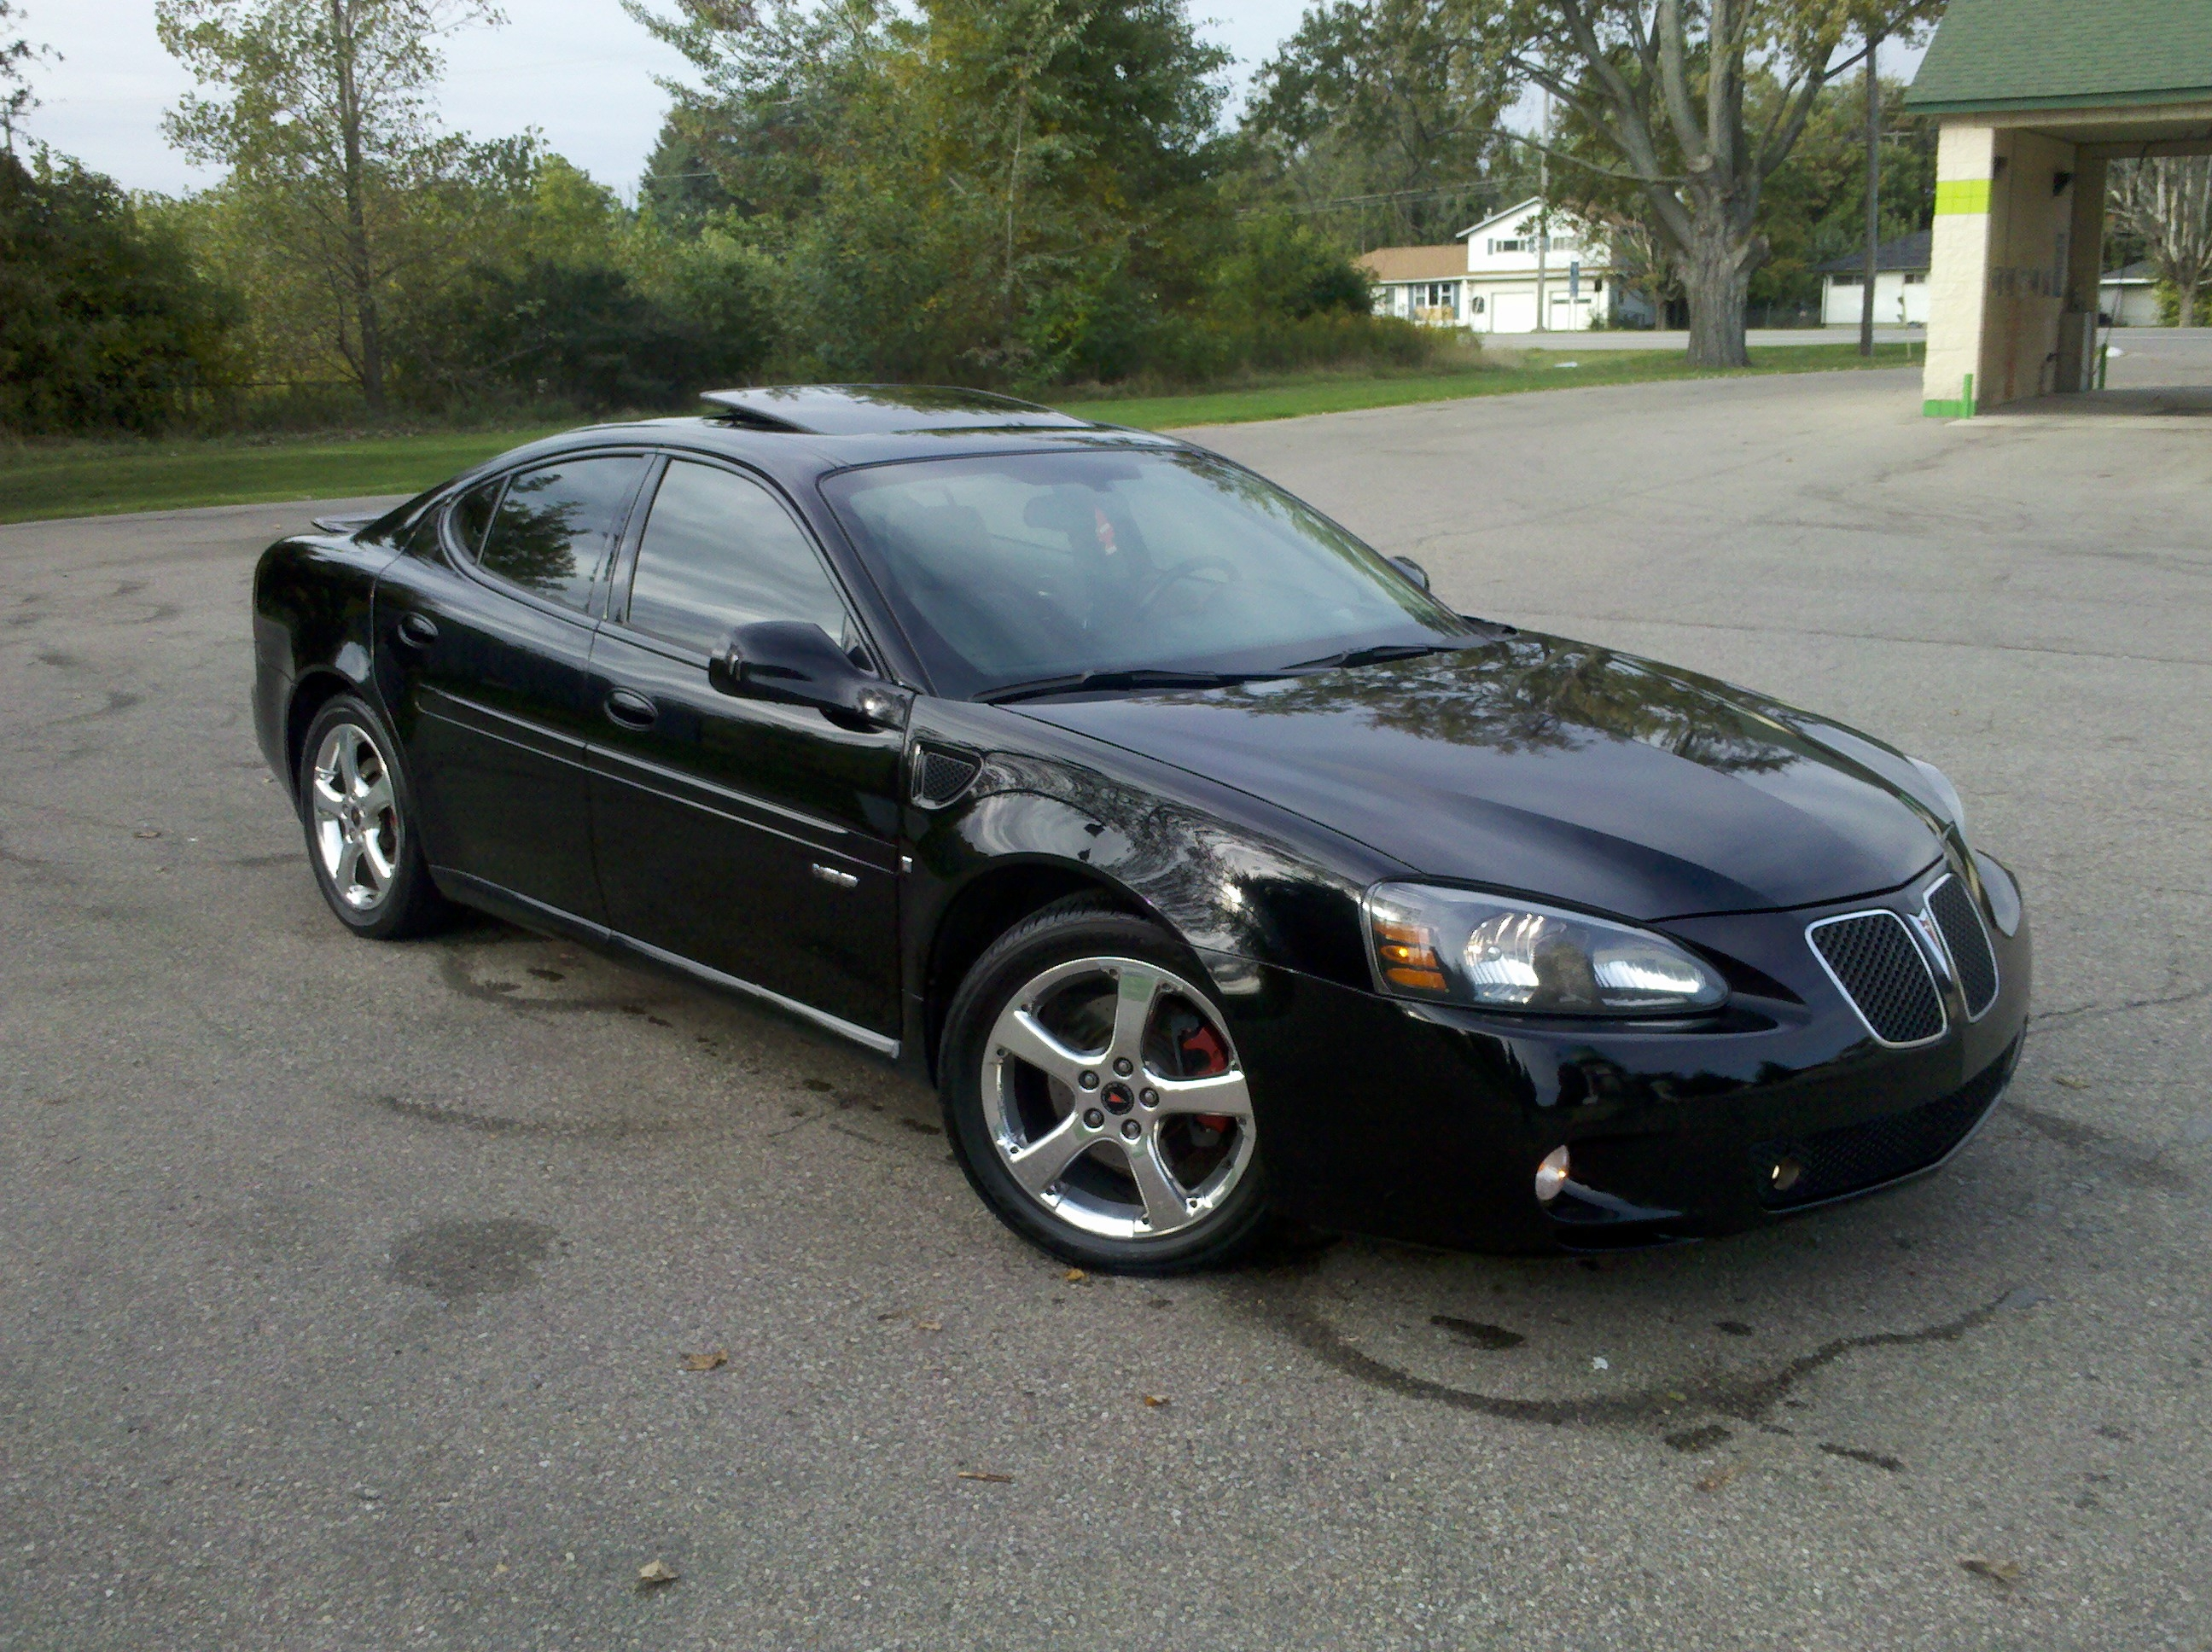 lee mac22 2006 pontiac grand prixgxp sedan 4d specs. Black Bedroom Furniture Sets. Home Design Ideas